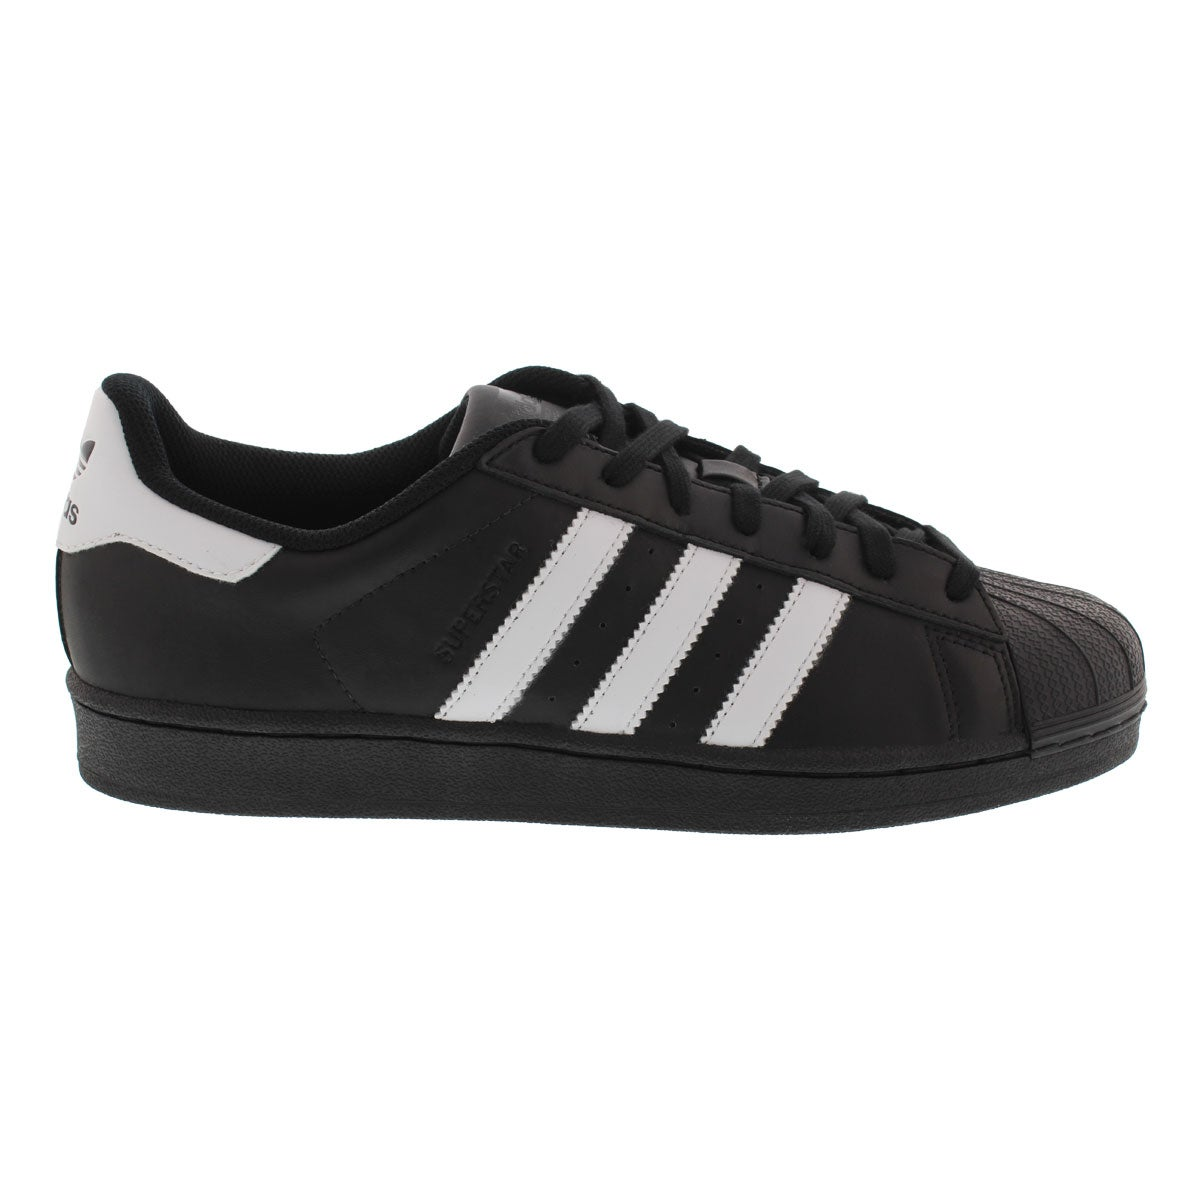 Mns Superstar blk/wht fashion sneaker